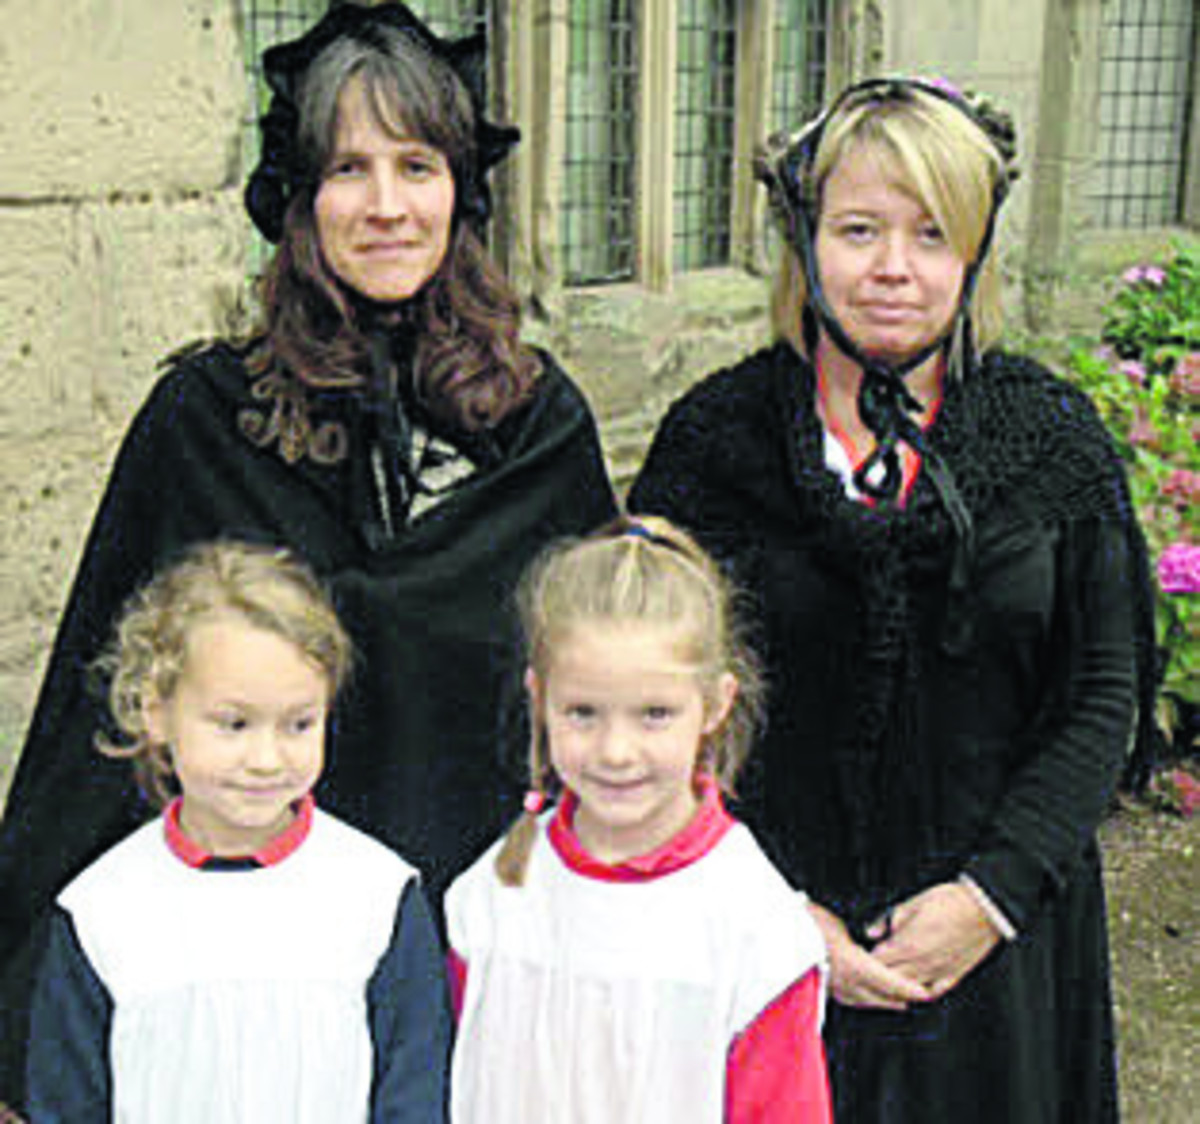 Issy Coventry, left, and Bethany Atherton with, back from left, Sally Gray and Rachel Blake during the Victorian day